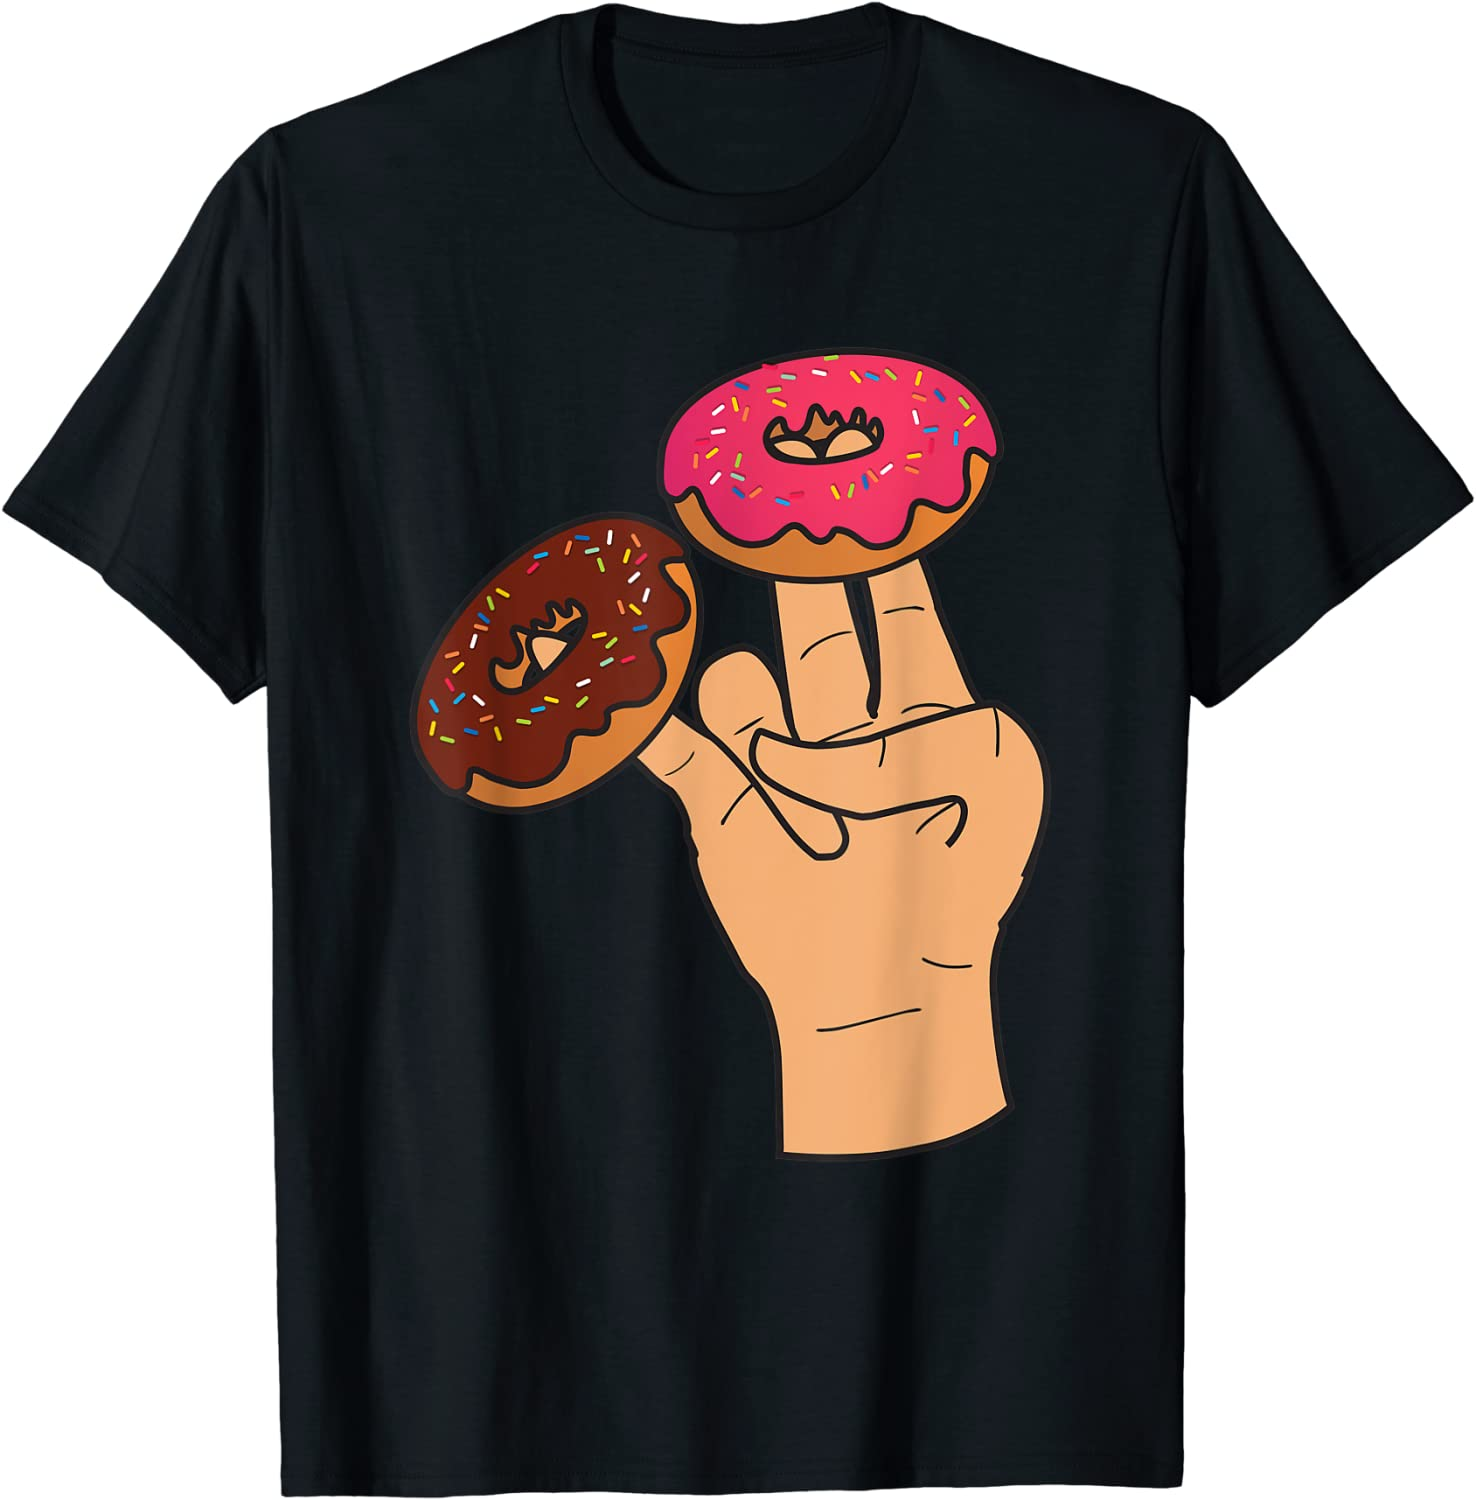 Two In The Pink One In The Stink Funny Shocker T-Shirt